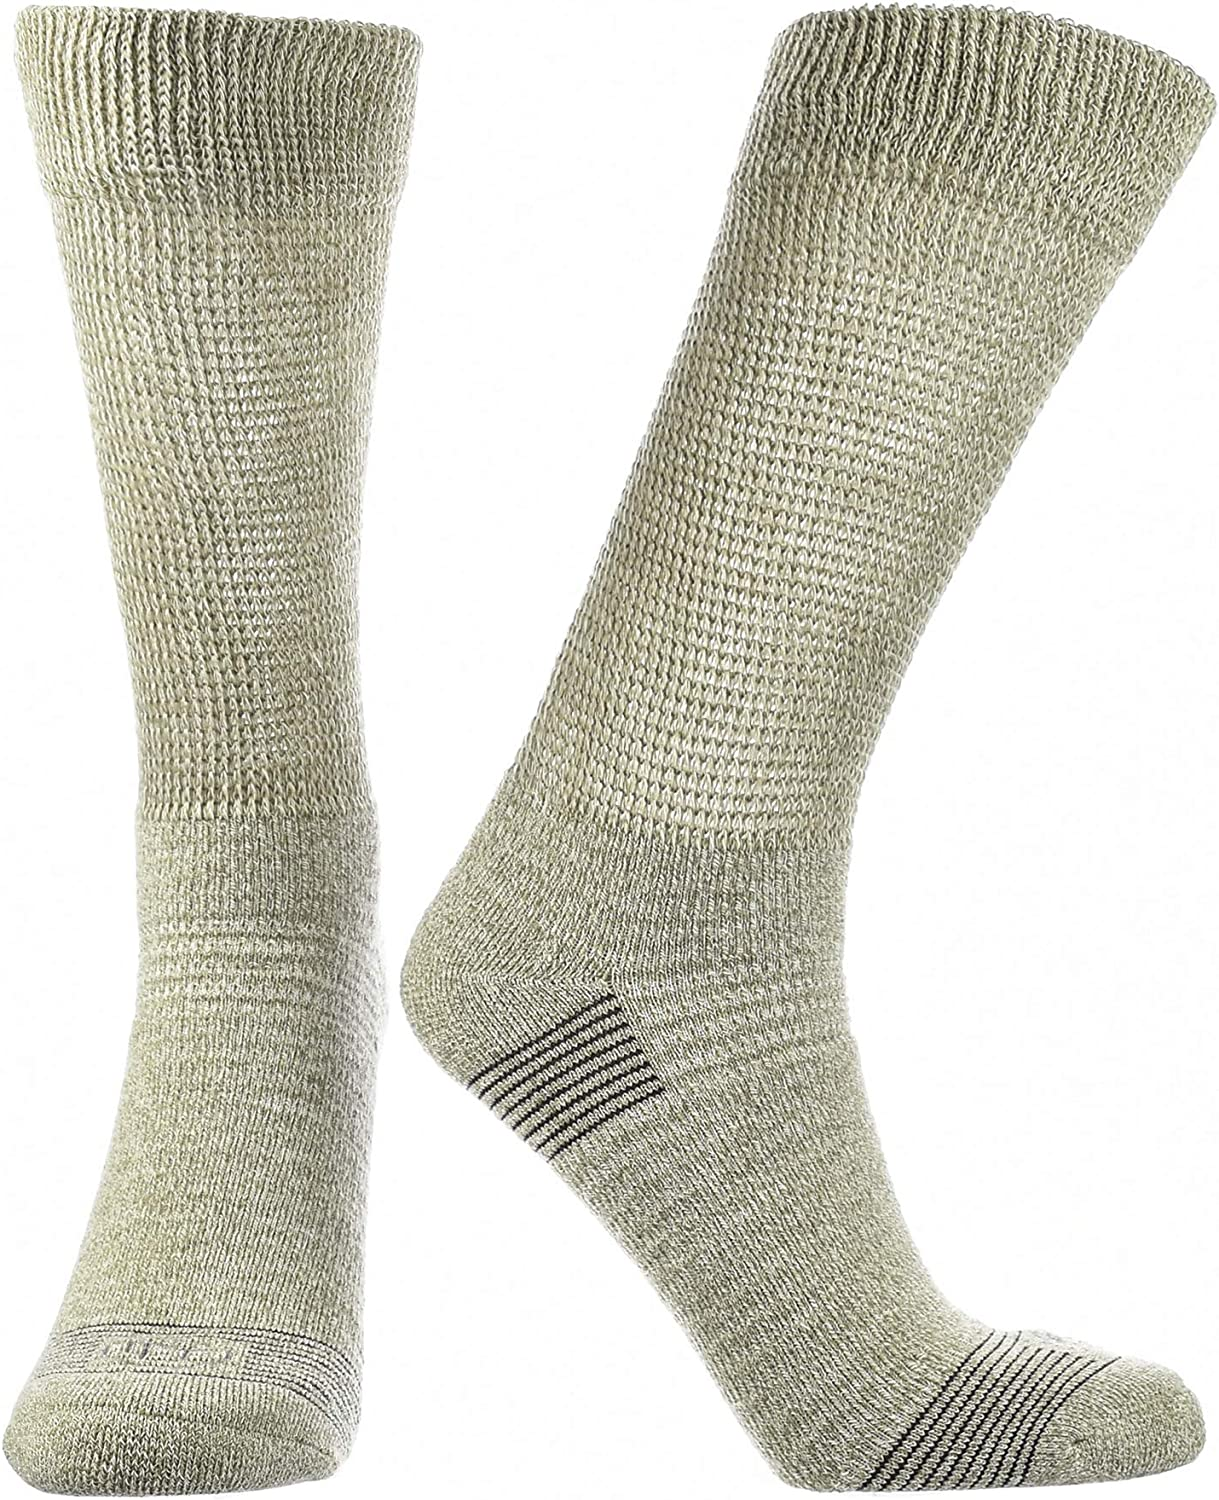 Doctor's Choice Women's Diabetic & Neuropathy Crew Socks, Non-Binding, Cushioned Sock with Aloe, Antimicrobial, Ventilation, and Seamless Toe, Single Pair, Tan, Medium: Womens Shoe Size 6-10: Health & Personal Care